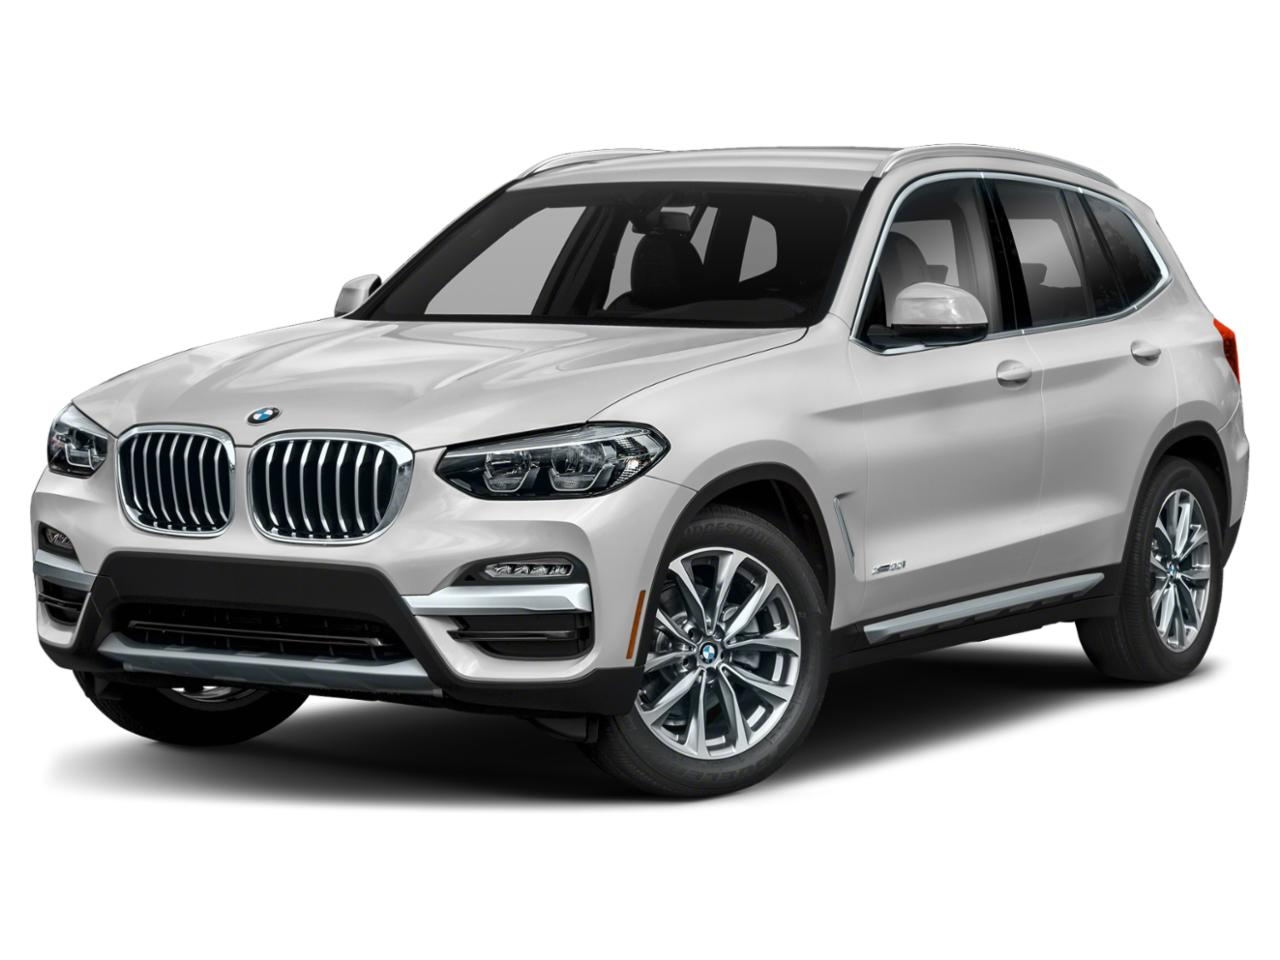 2019 BMW X3 sDrive30i Vehicle Photo in TEMPLE, TX 76504-3447